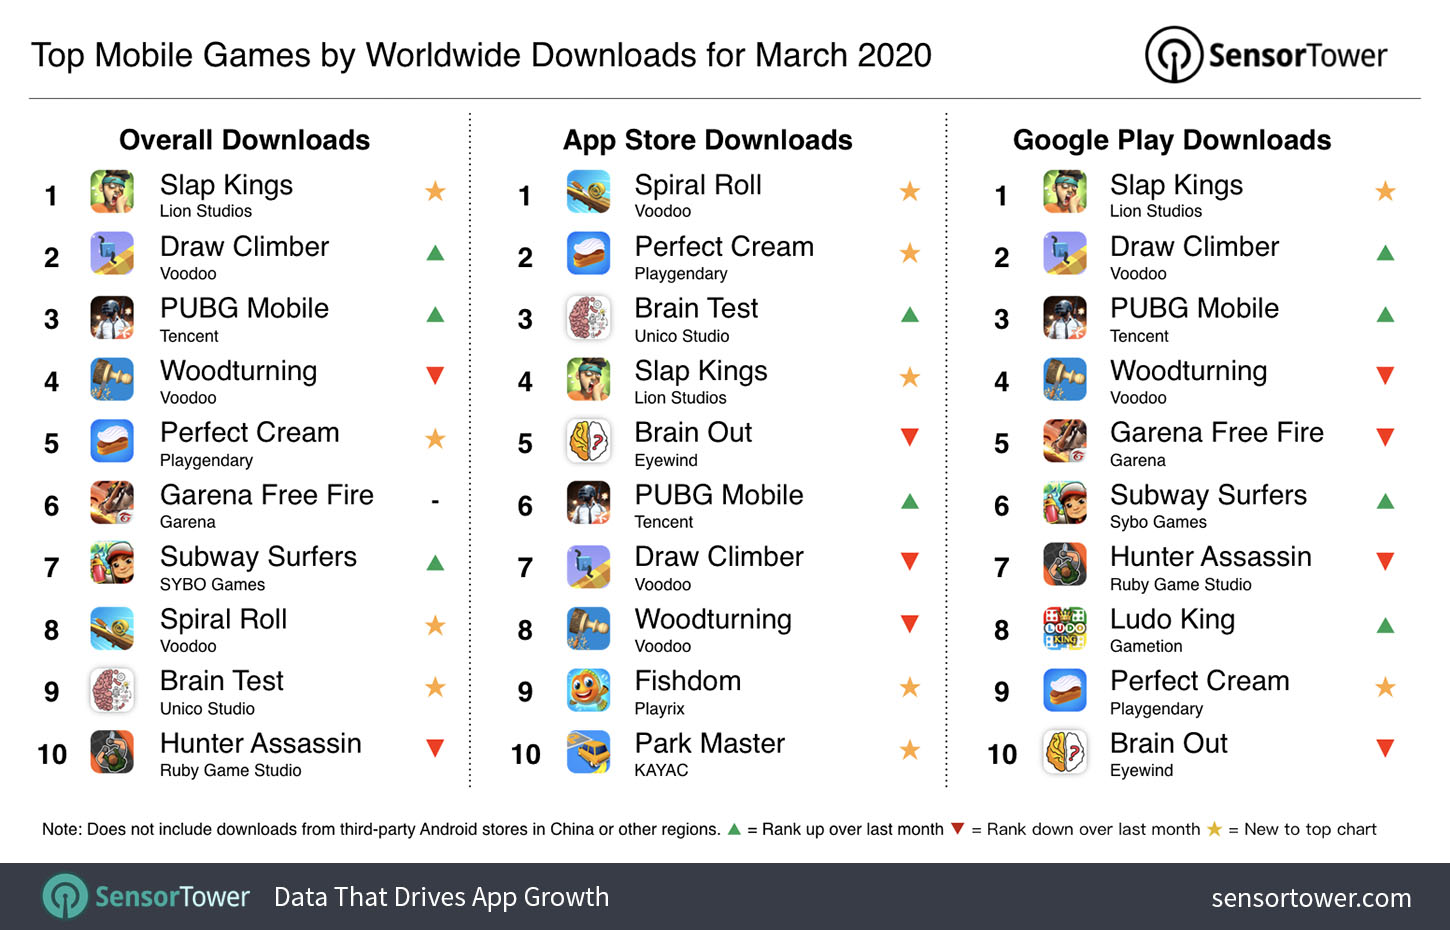 Top Mobile Games Worldwide for March 2020 by Downloads